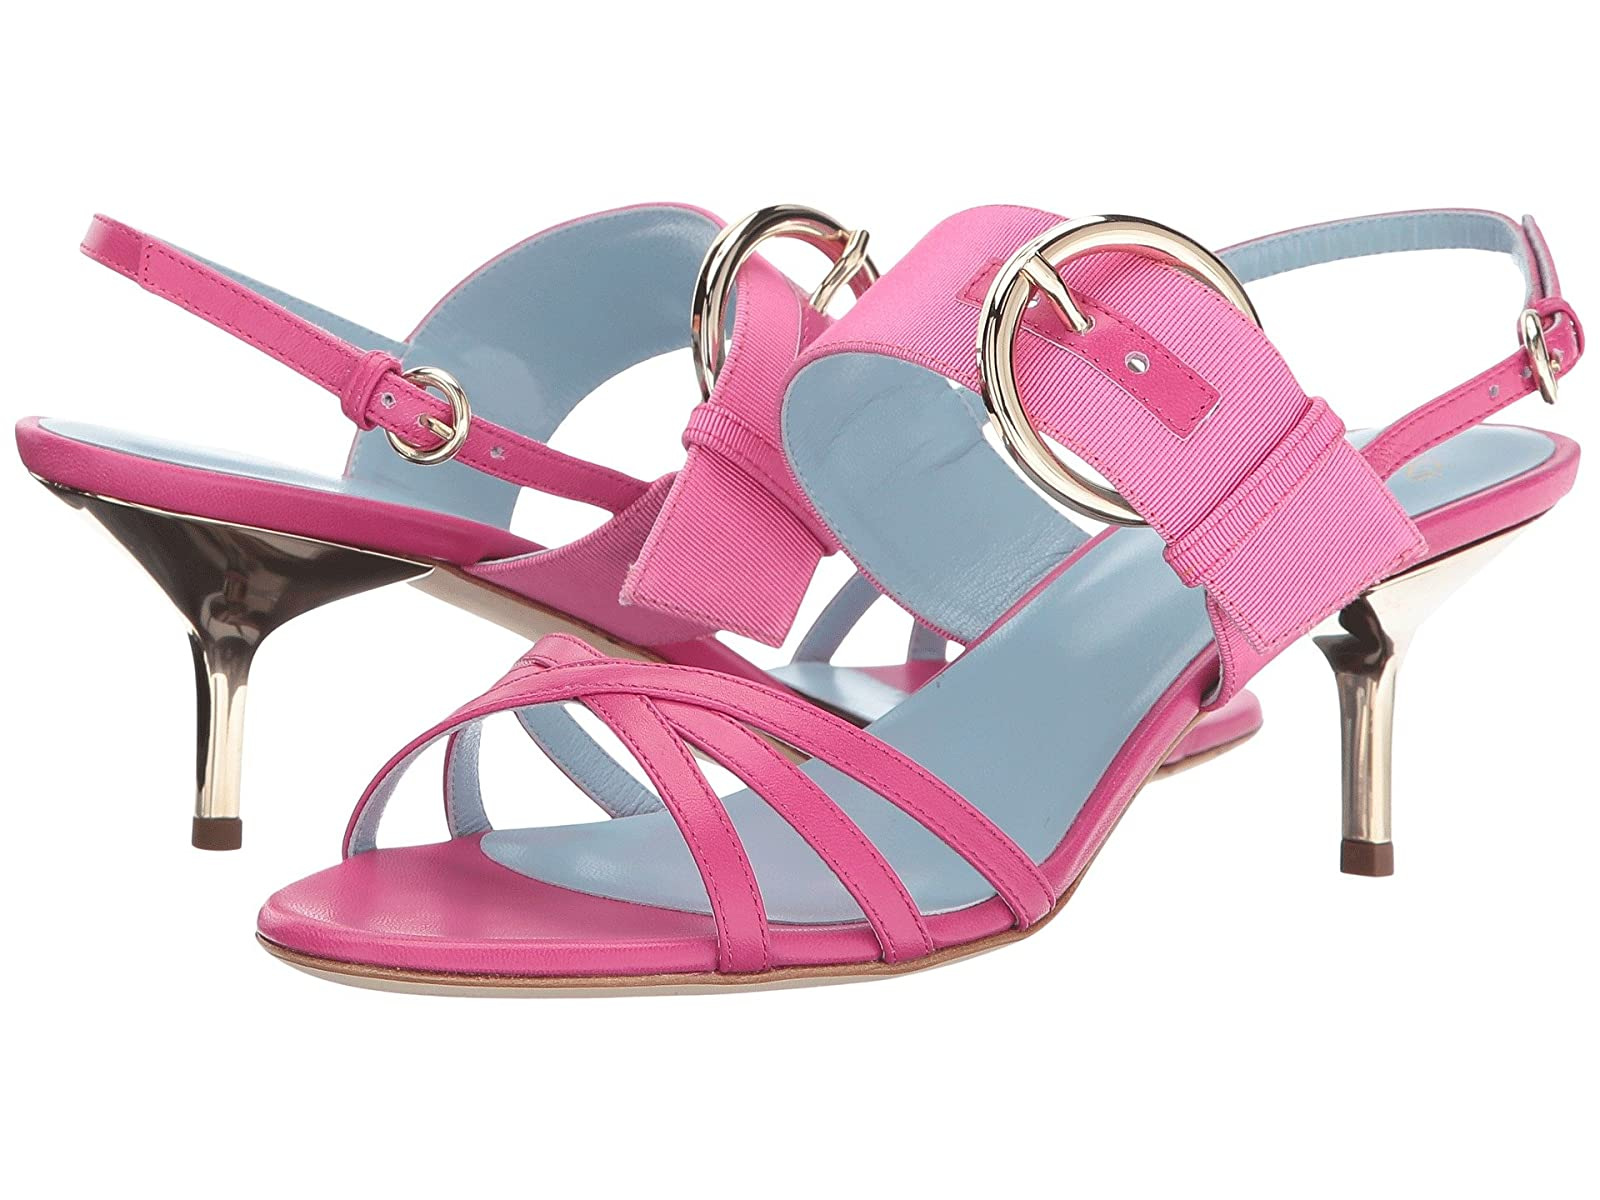 Frances Valentine LisetteCheap and distinctive eye-catching shoes